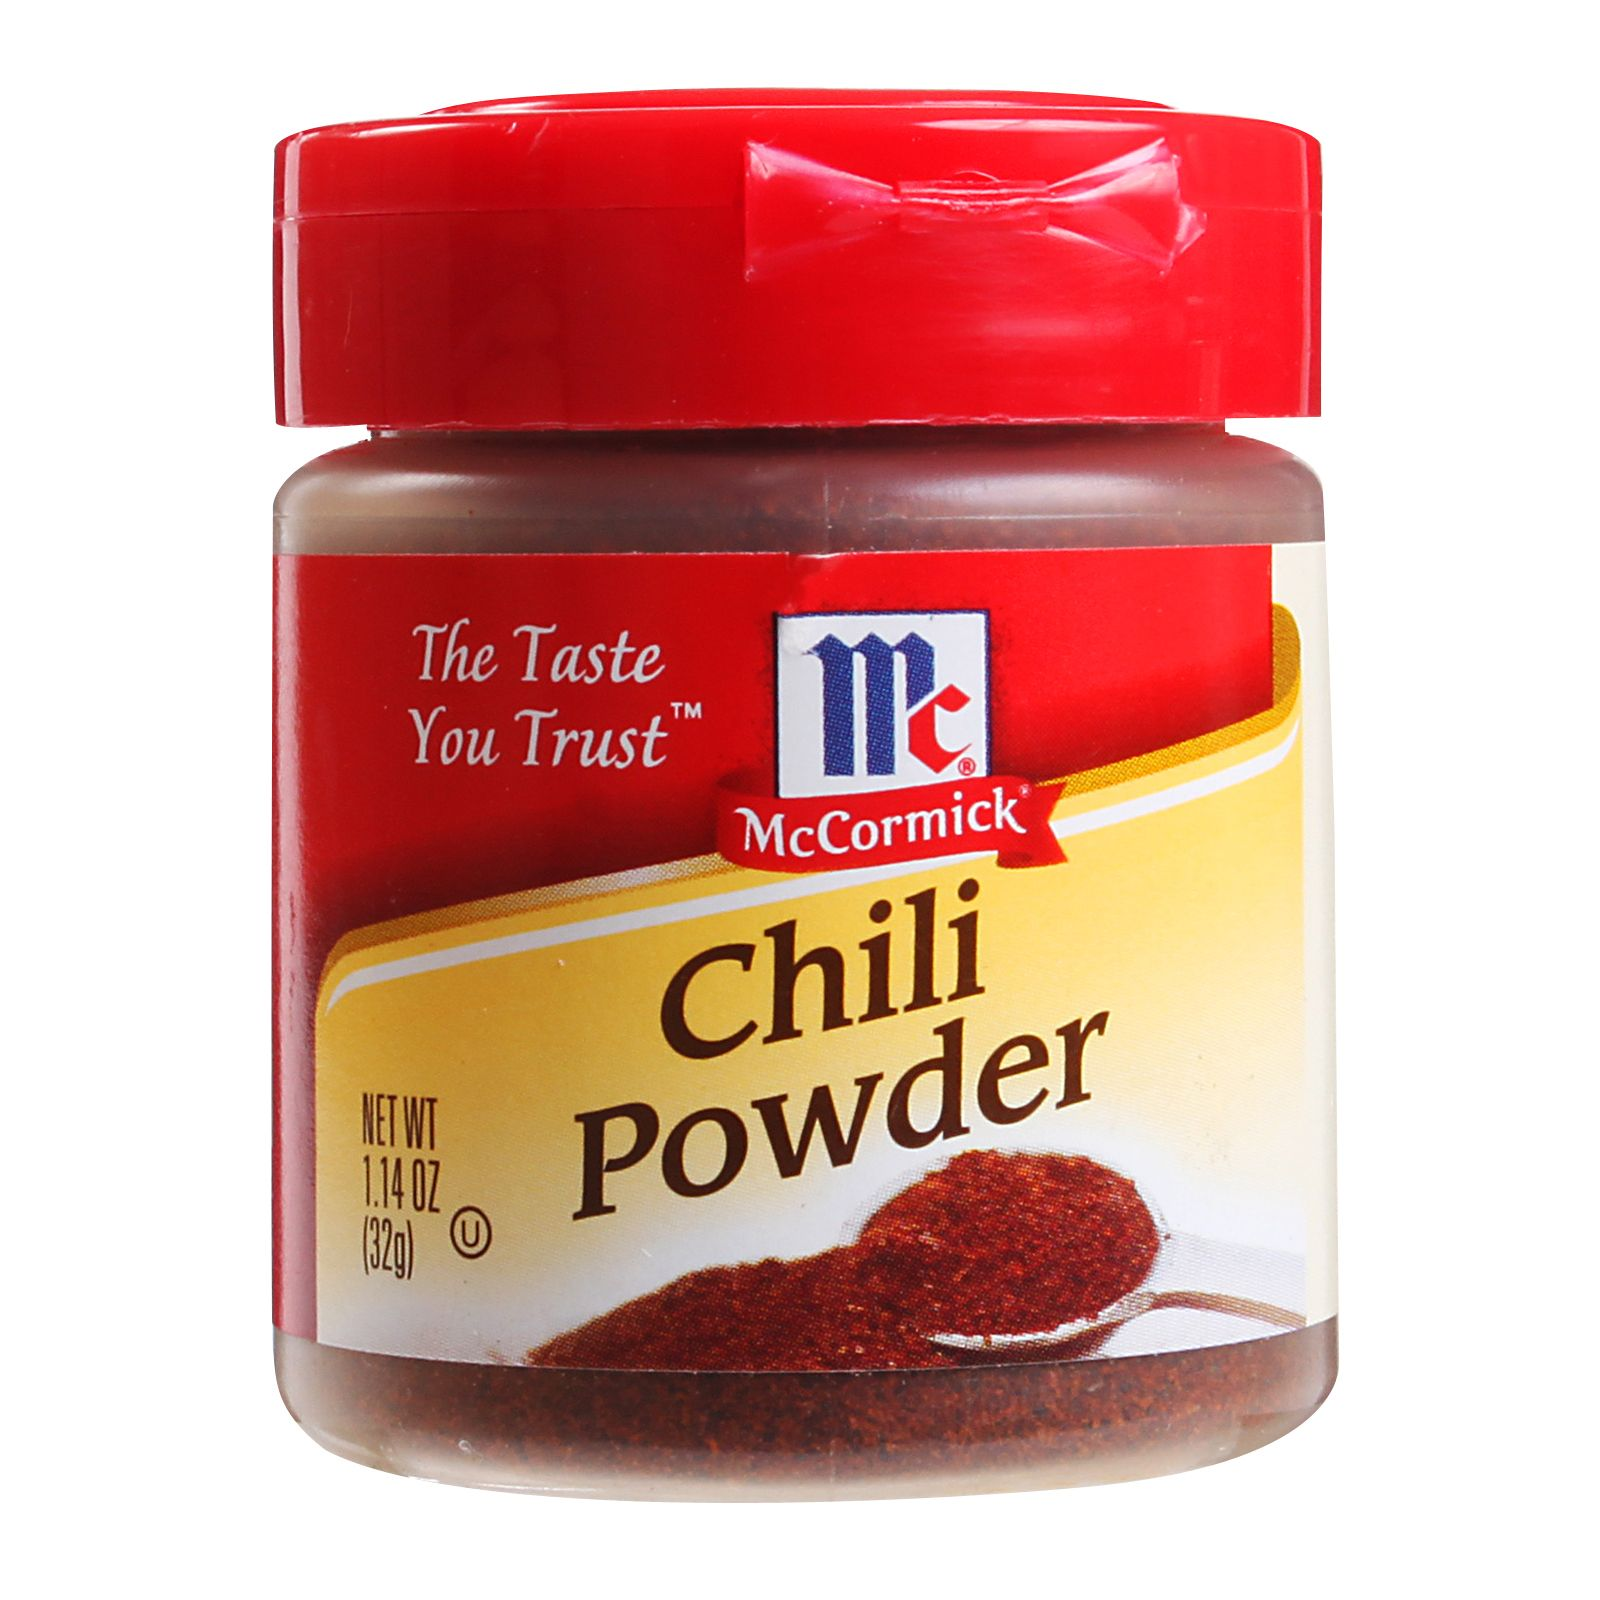 McCormick Chili Powder RedMart (With images) Mccormick